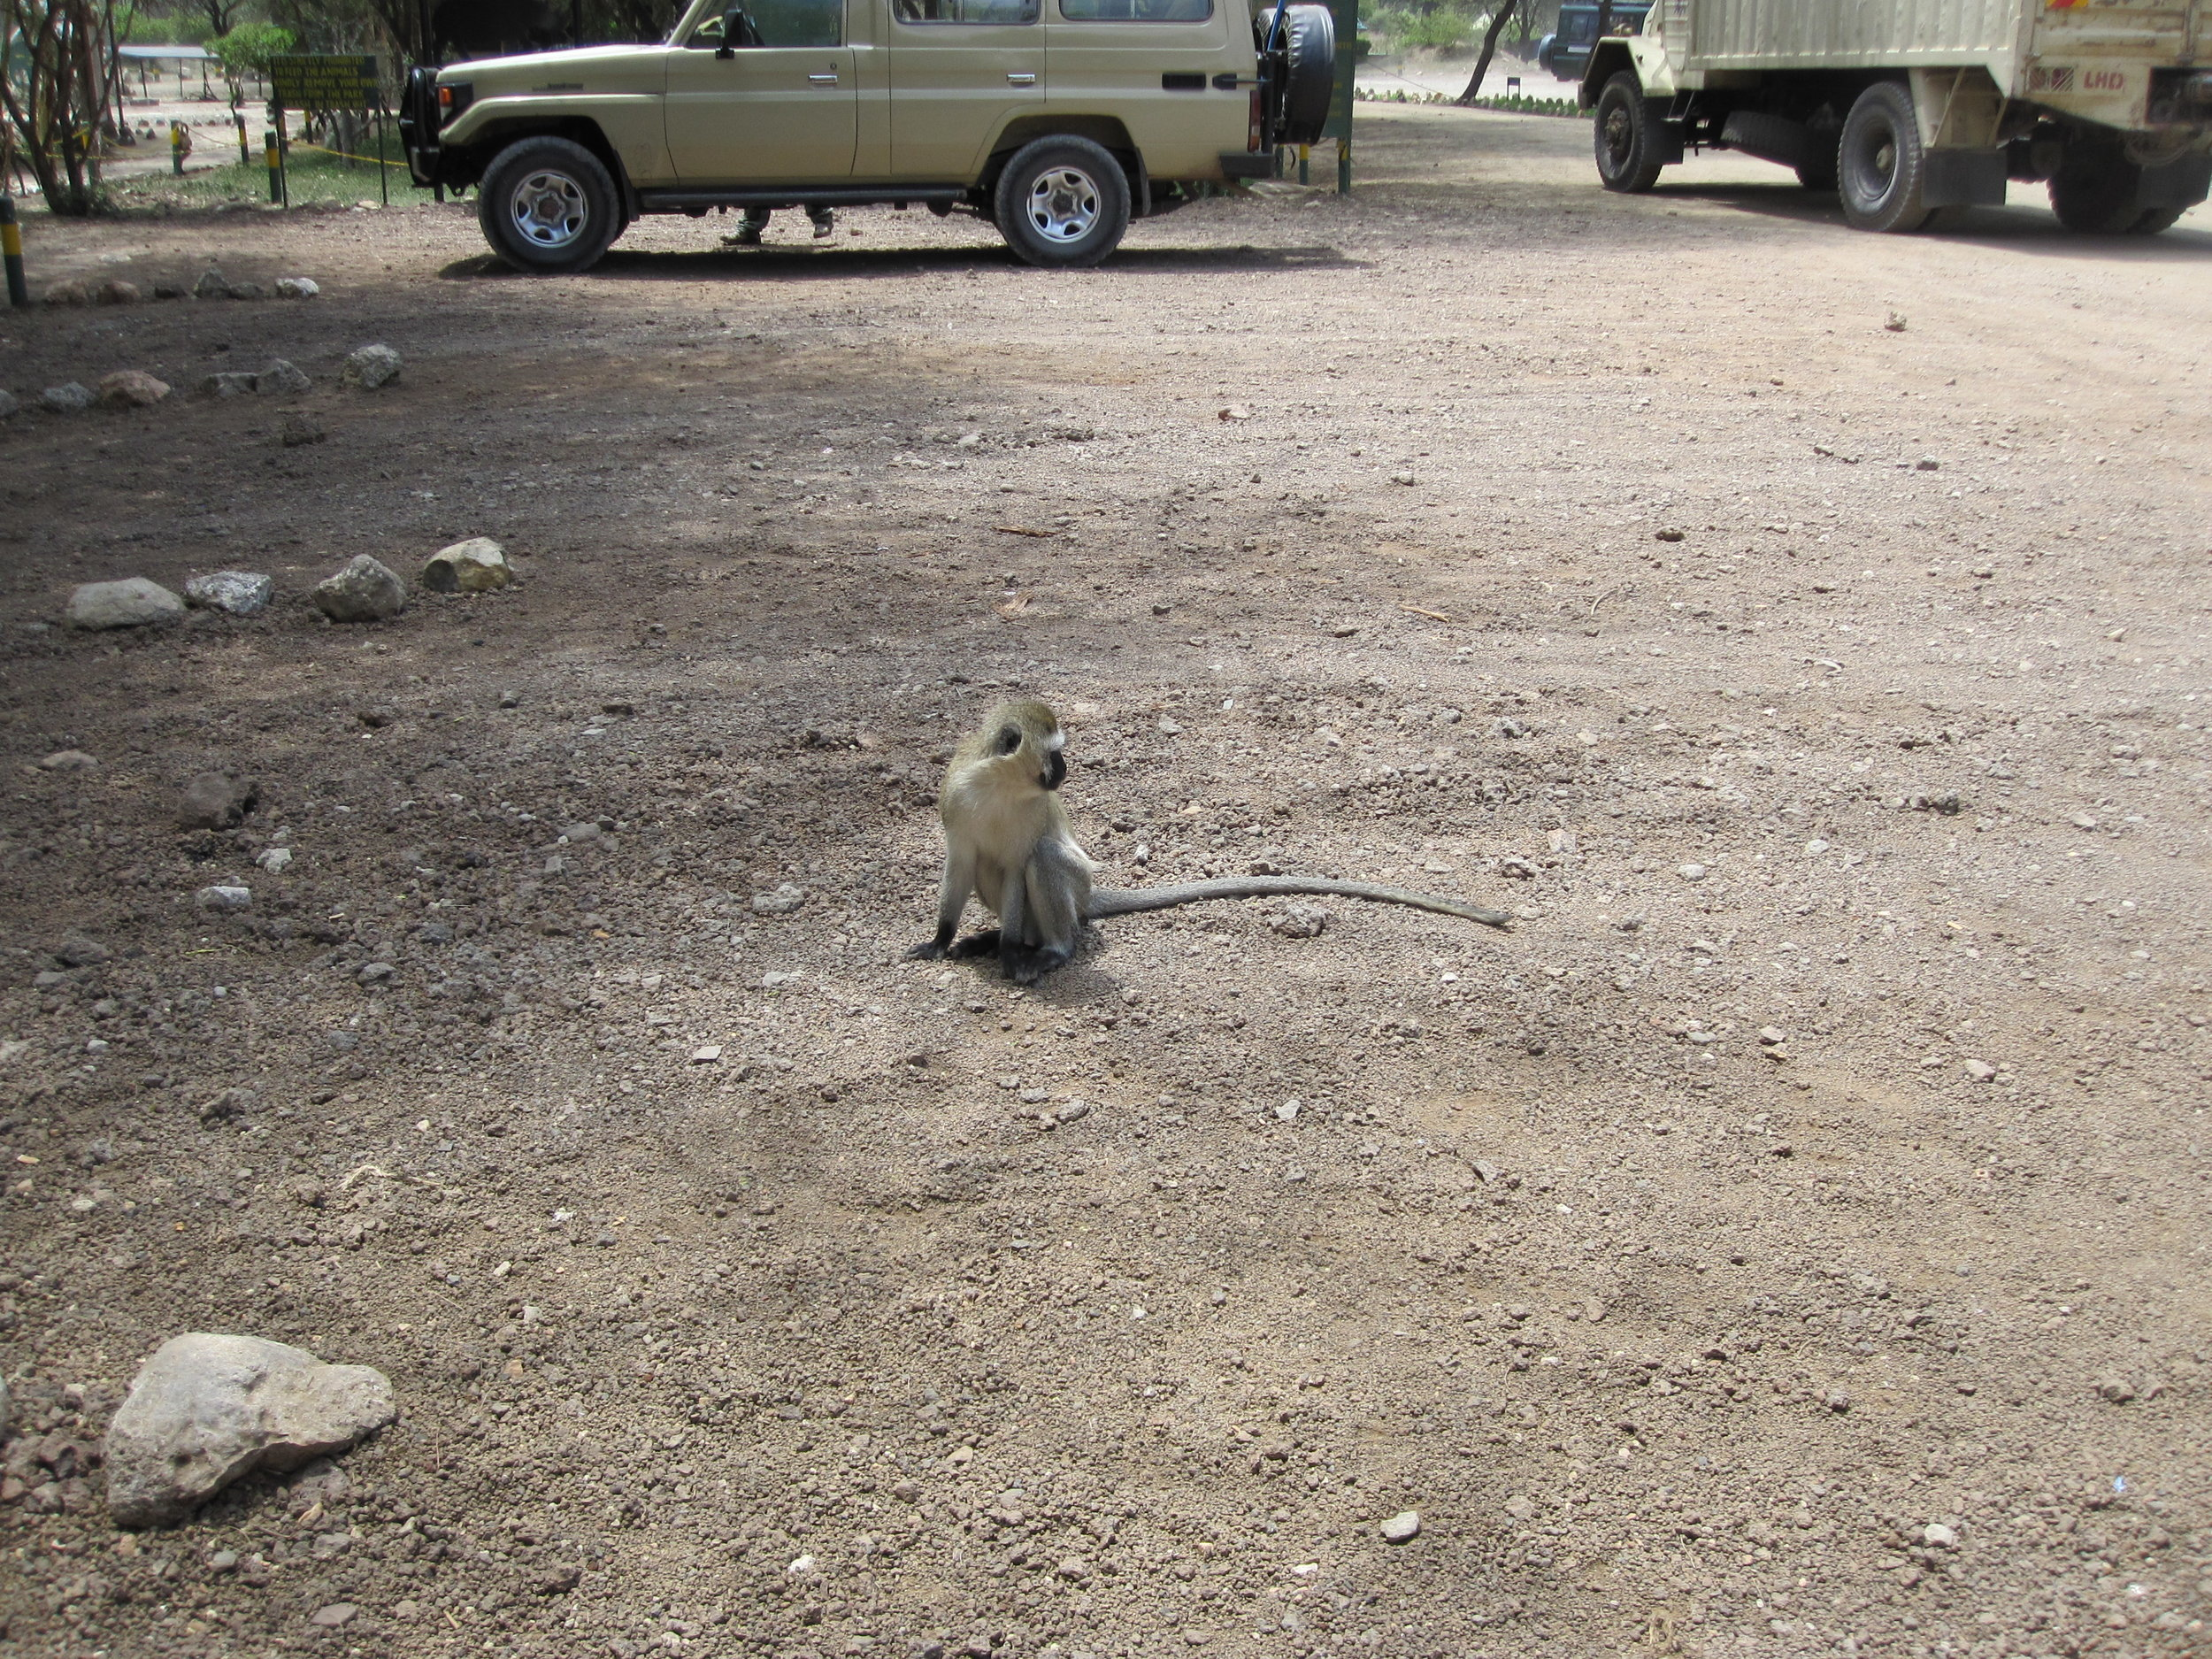 Monkey in the parking lot at Tarangire.